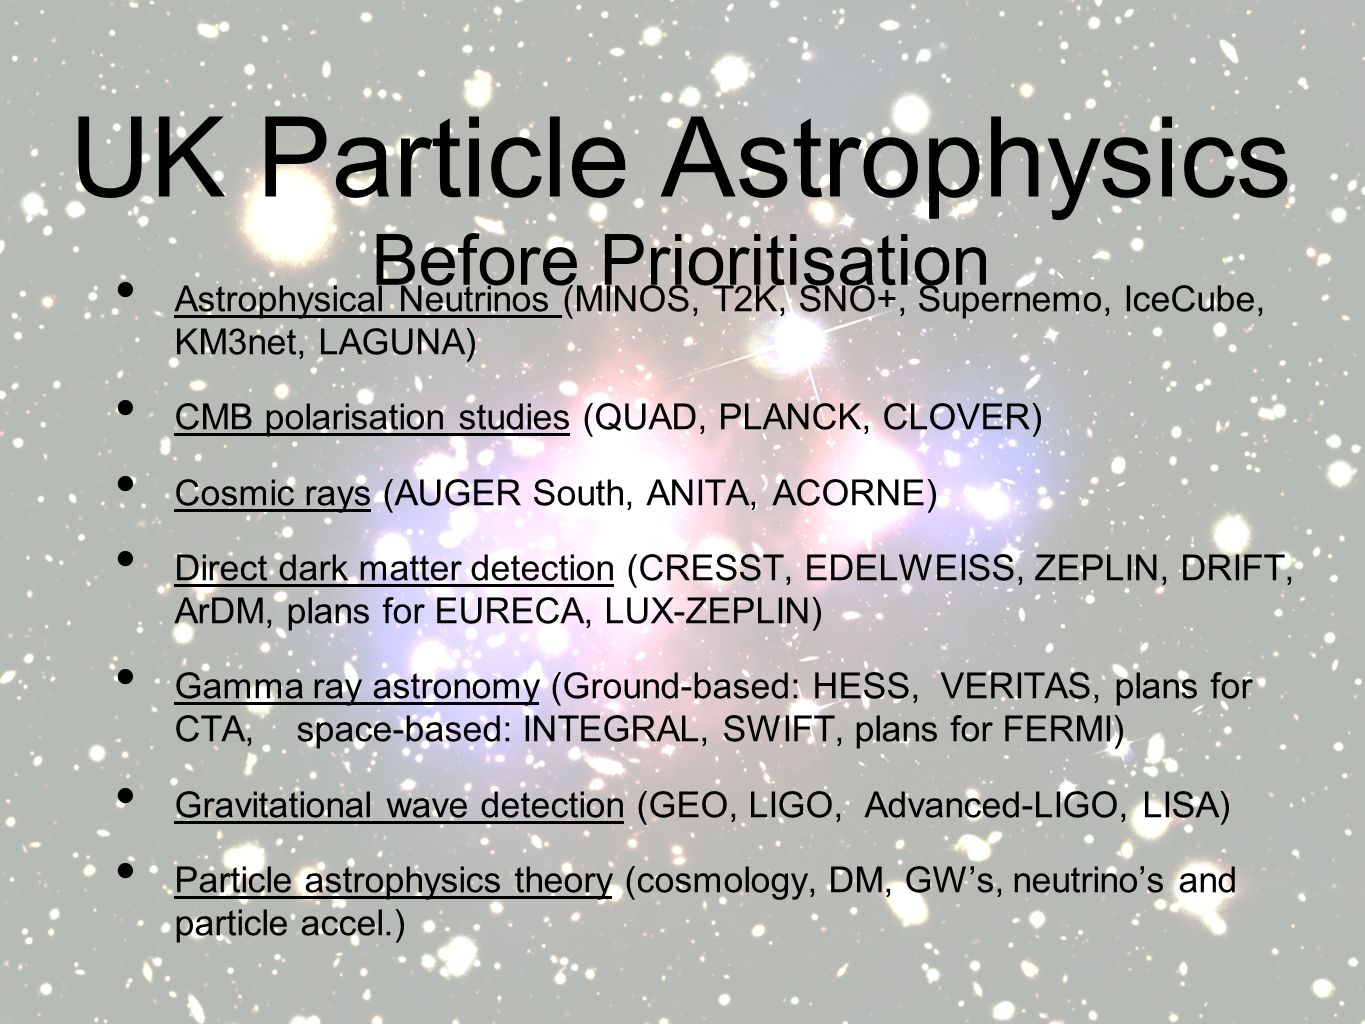 UK Particle Astrophysics Astrophysical Neutrinos (MINOS, T2K, SNO+, Supernemo, IceCube, KM3net, LAGUNA) CMB polarisation studies (QUAD, PLANCK, CLOVER) Cosmic rays (AUGER South, ANITA, ACORNE) Direct dark matter detection (CRESST, EDELWEISS, ZEPLIN, DRIFT, ArDM, plans for EURECA, LUX-ZEPLIN) Gamma ray astronomy (Ground-based: HESS, VERITAS, plans for CTA, space-based: INTEGRAL, SWIFT, plans for FERMI) Gravitational wave detection (GEO, LIGO, Advanced-LIGO, LISA) Particle astrophysics theory (cosmology, DM, GWs, neutrinos and particle accel.) Before Prioritisation